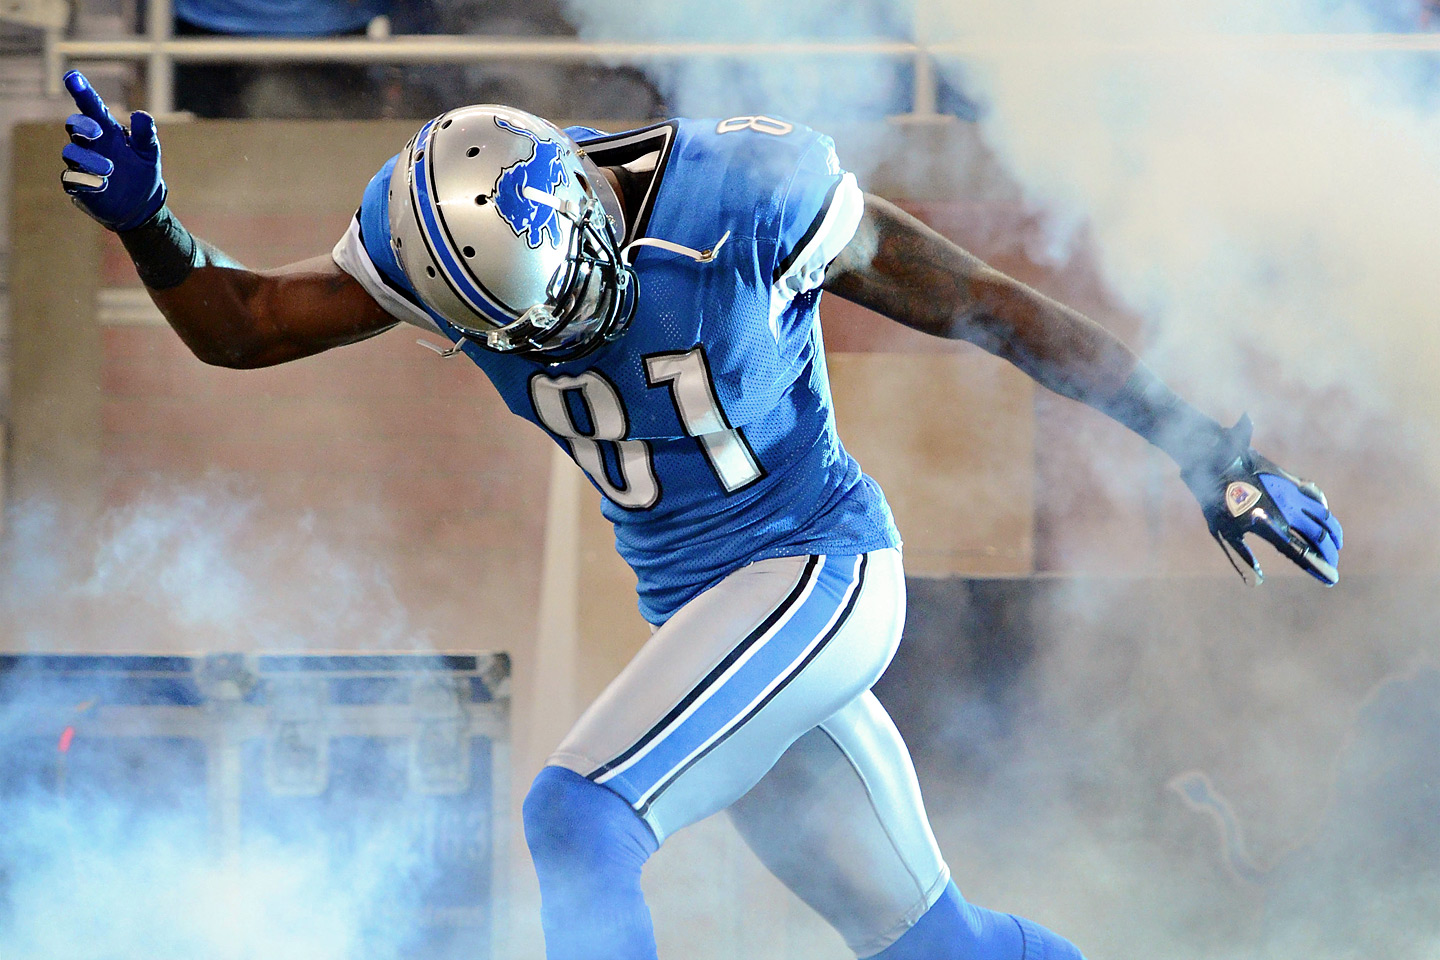 Detroit wide receiver Calvin Johnson